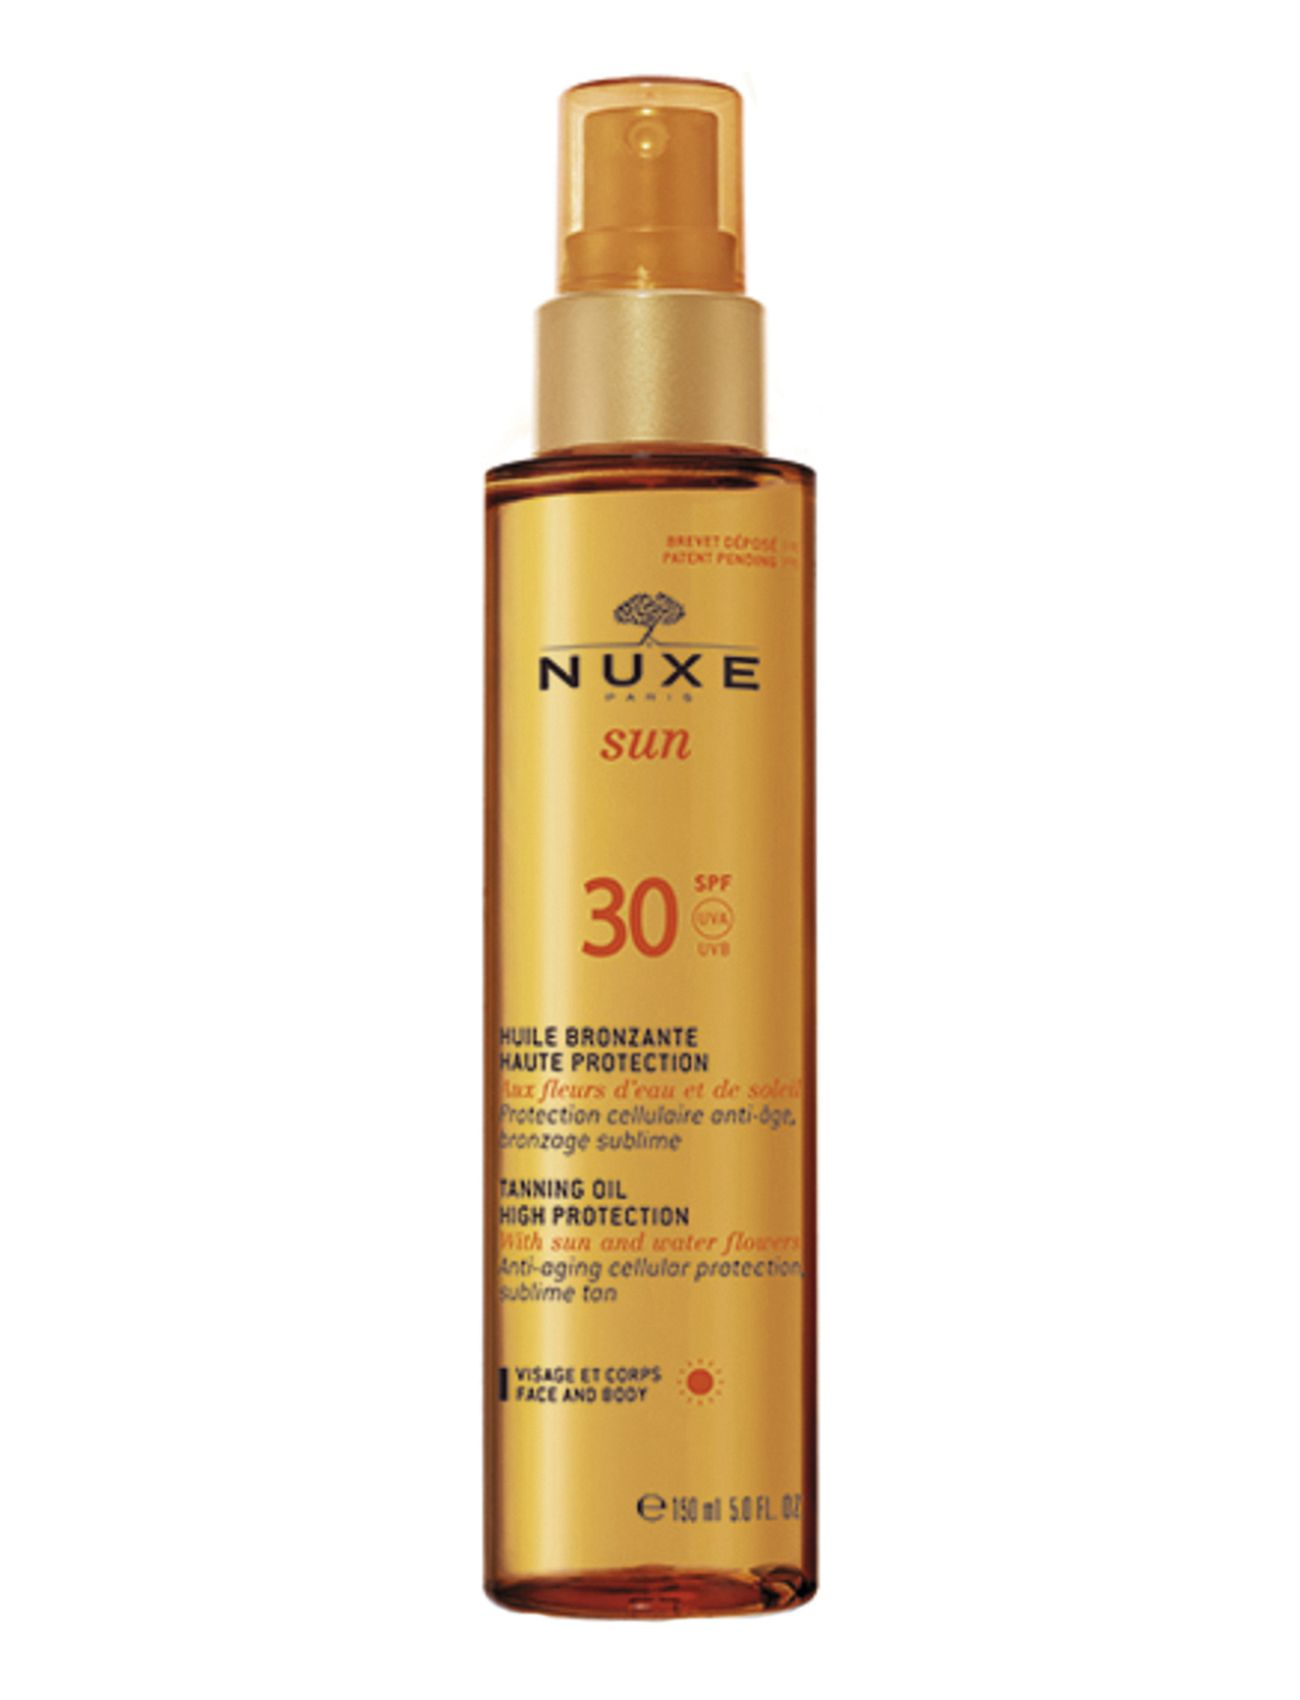 Image of Tanning Oil Face & Body Spf30 Beauty MEN Skin Care Sun Products Face Nude NUXE (3232944721)